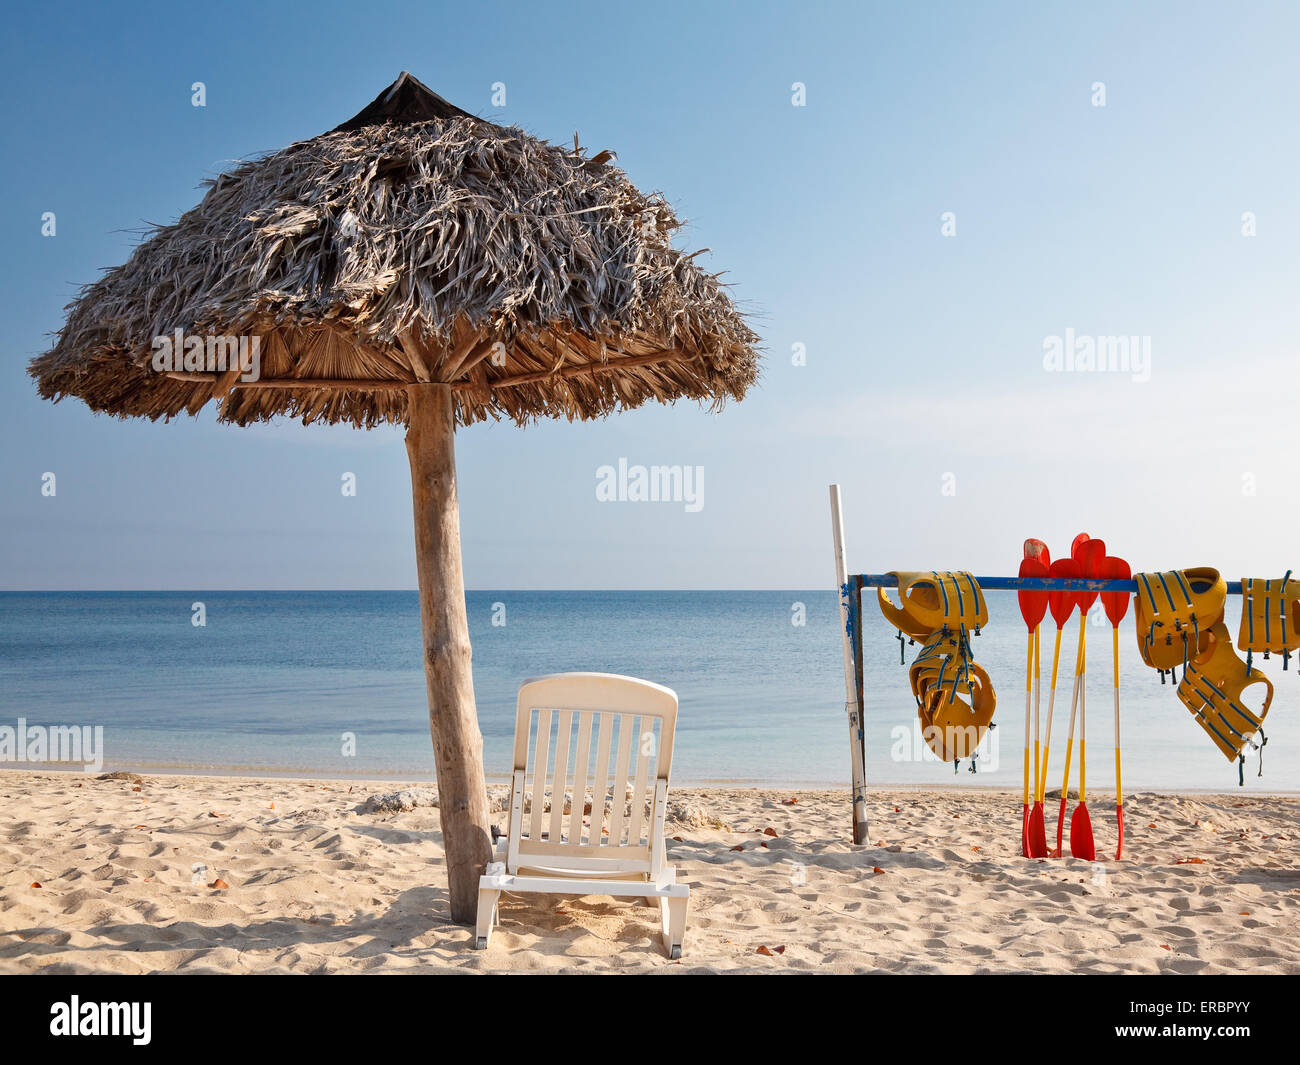 Caribbean tropical beach  with straw umbrella and watersport equipment - Stock Image